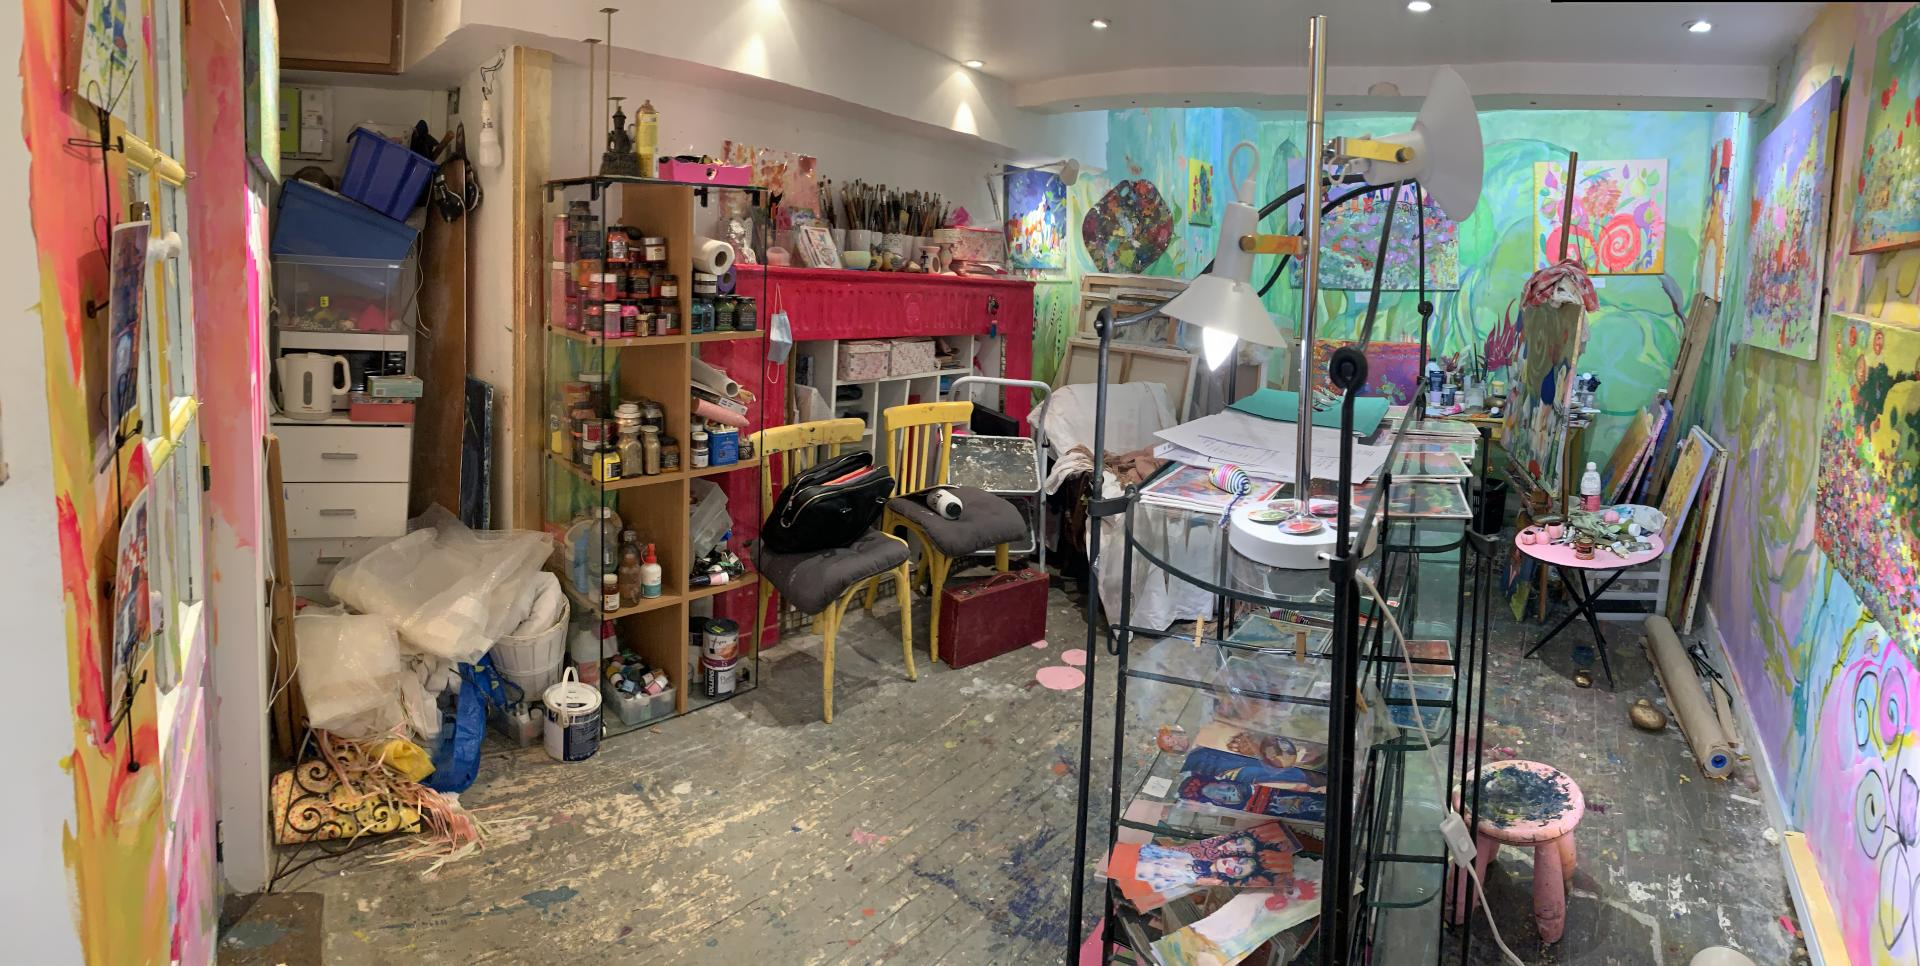 cession de droit au bail Place Sainte Anne Rennes